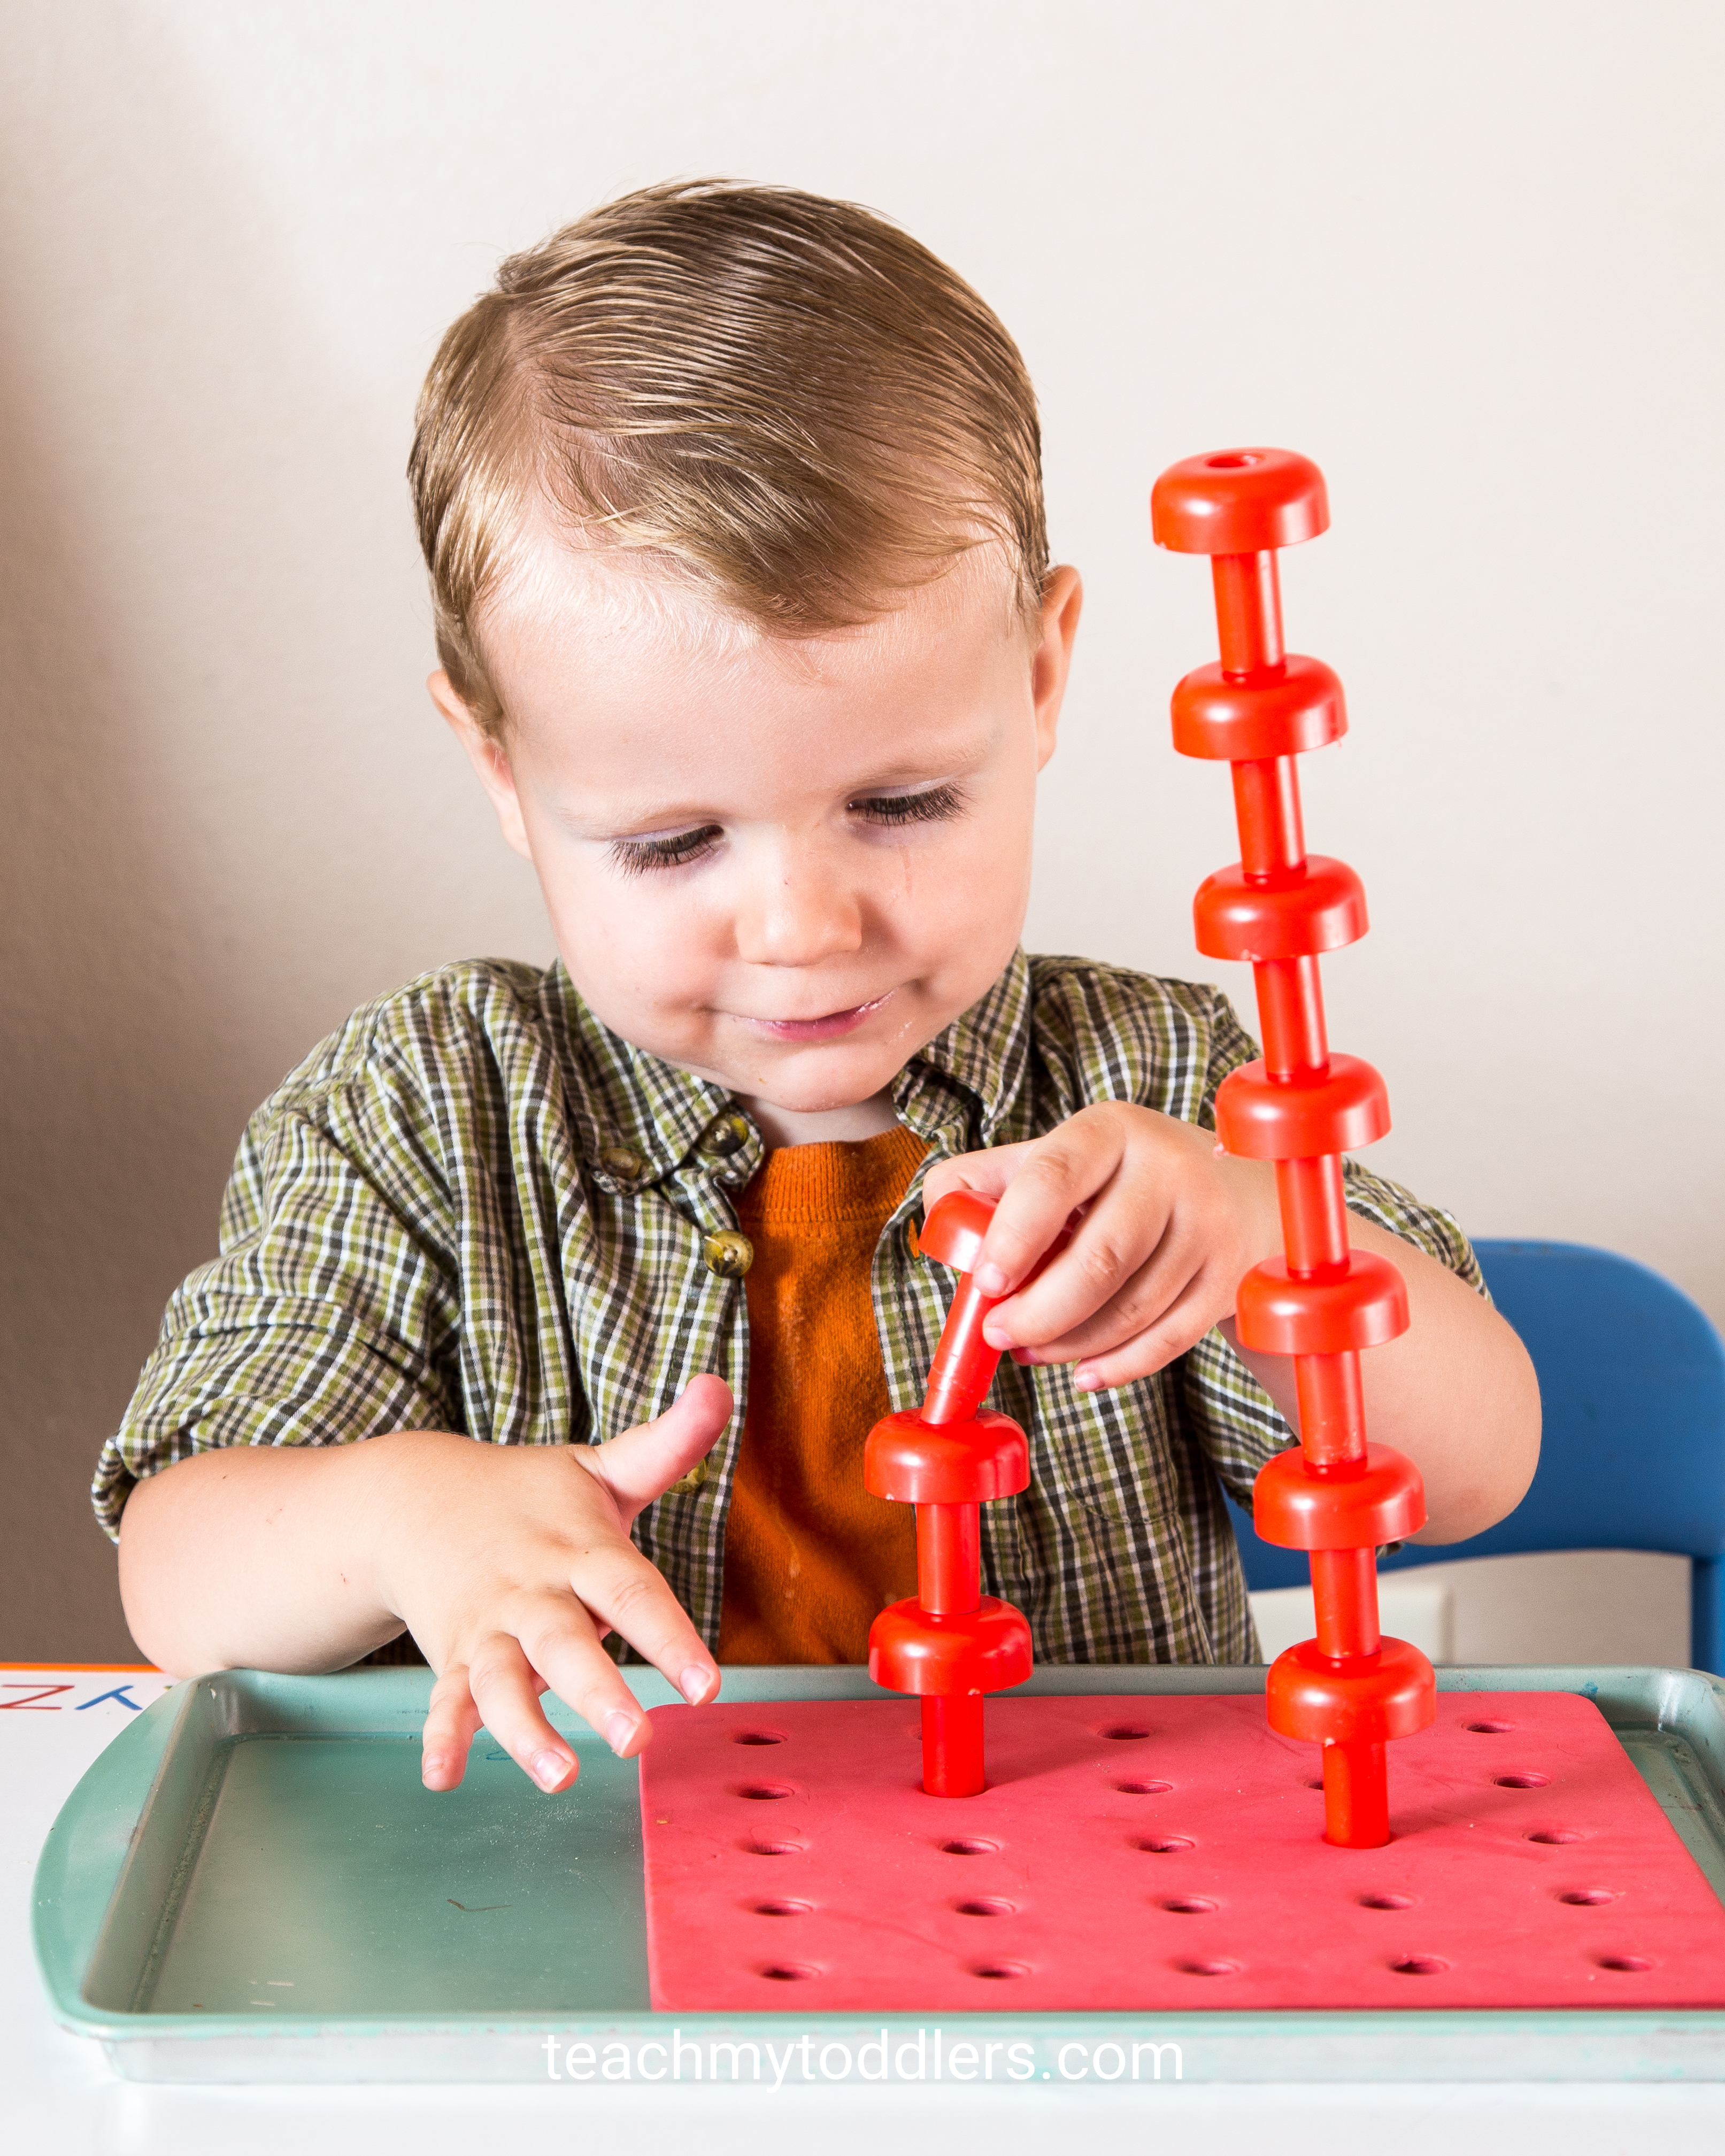 Find out how to use this red peg board on tot trays to teach your toddler red color